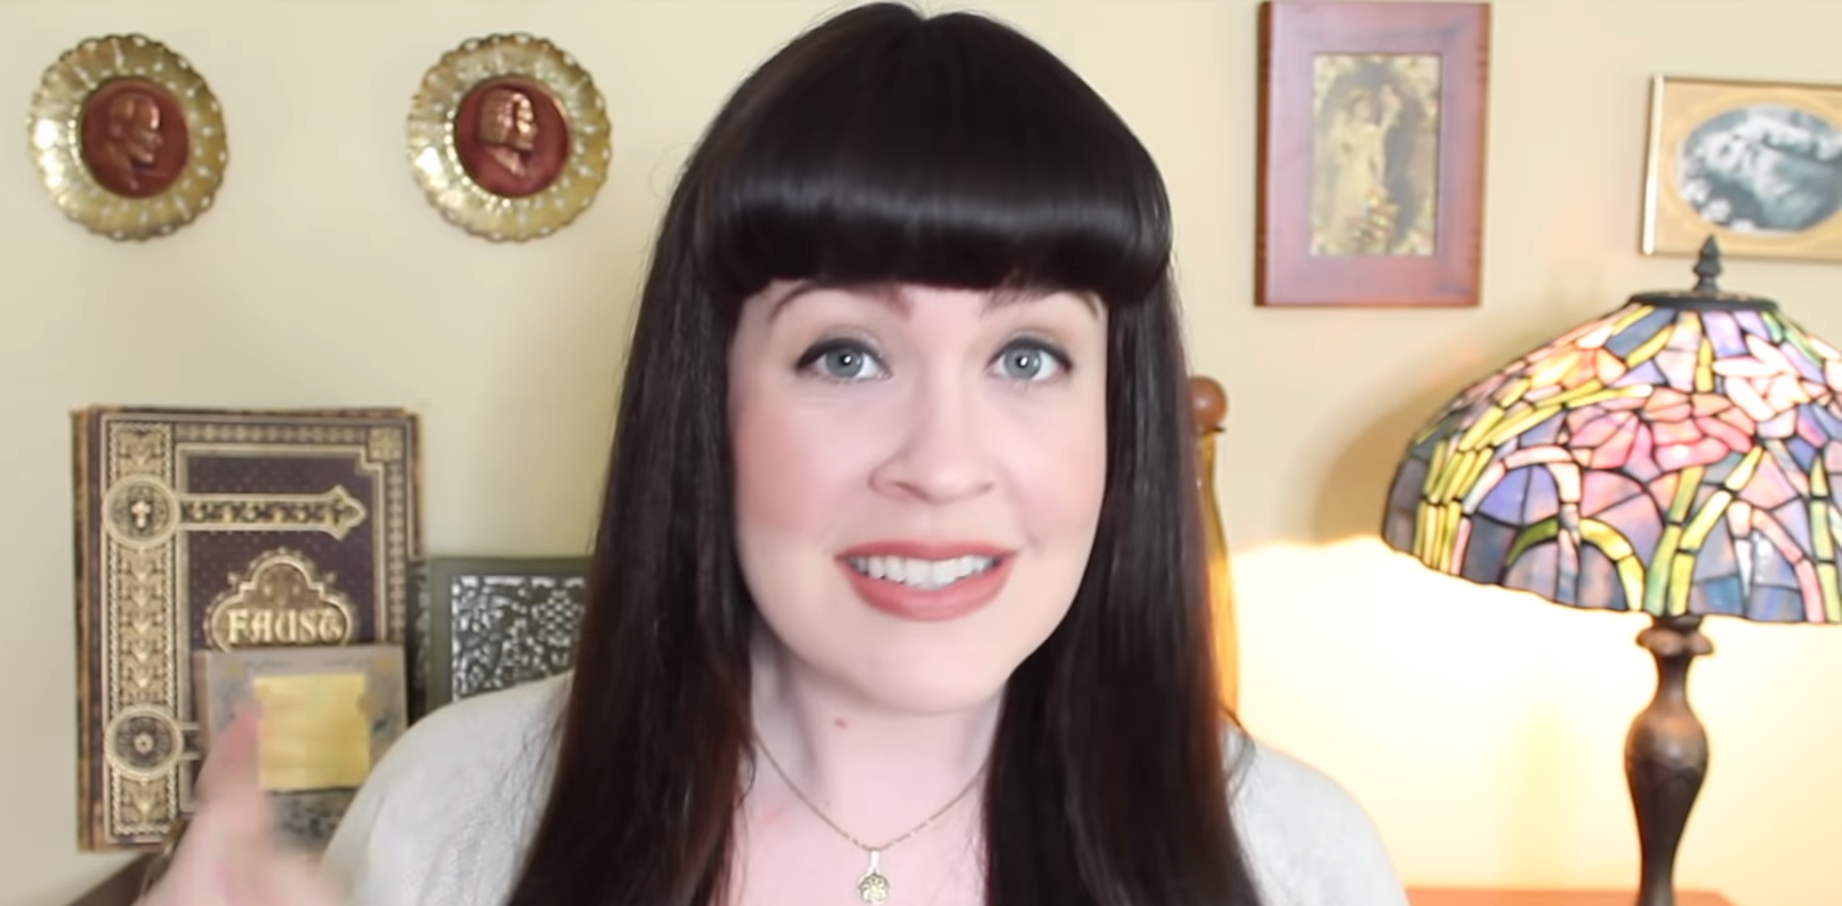 A Good Place: The YouTube mortician who taught me not to fear death